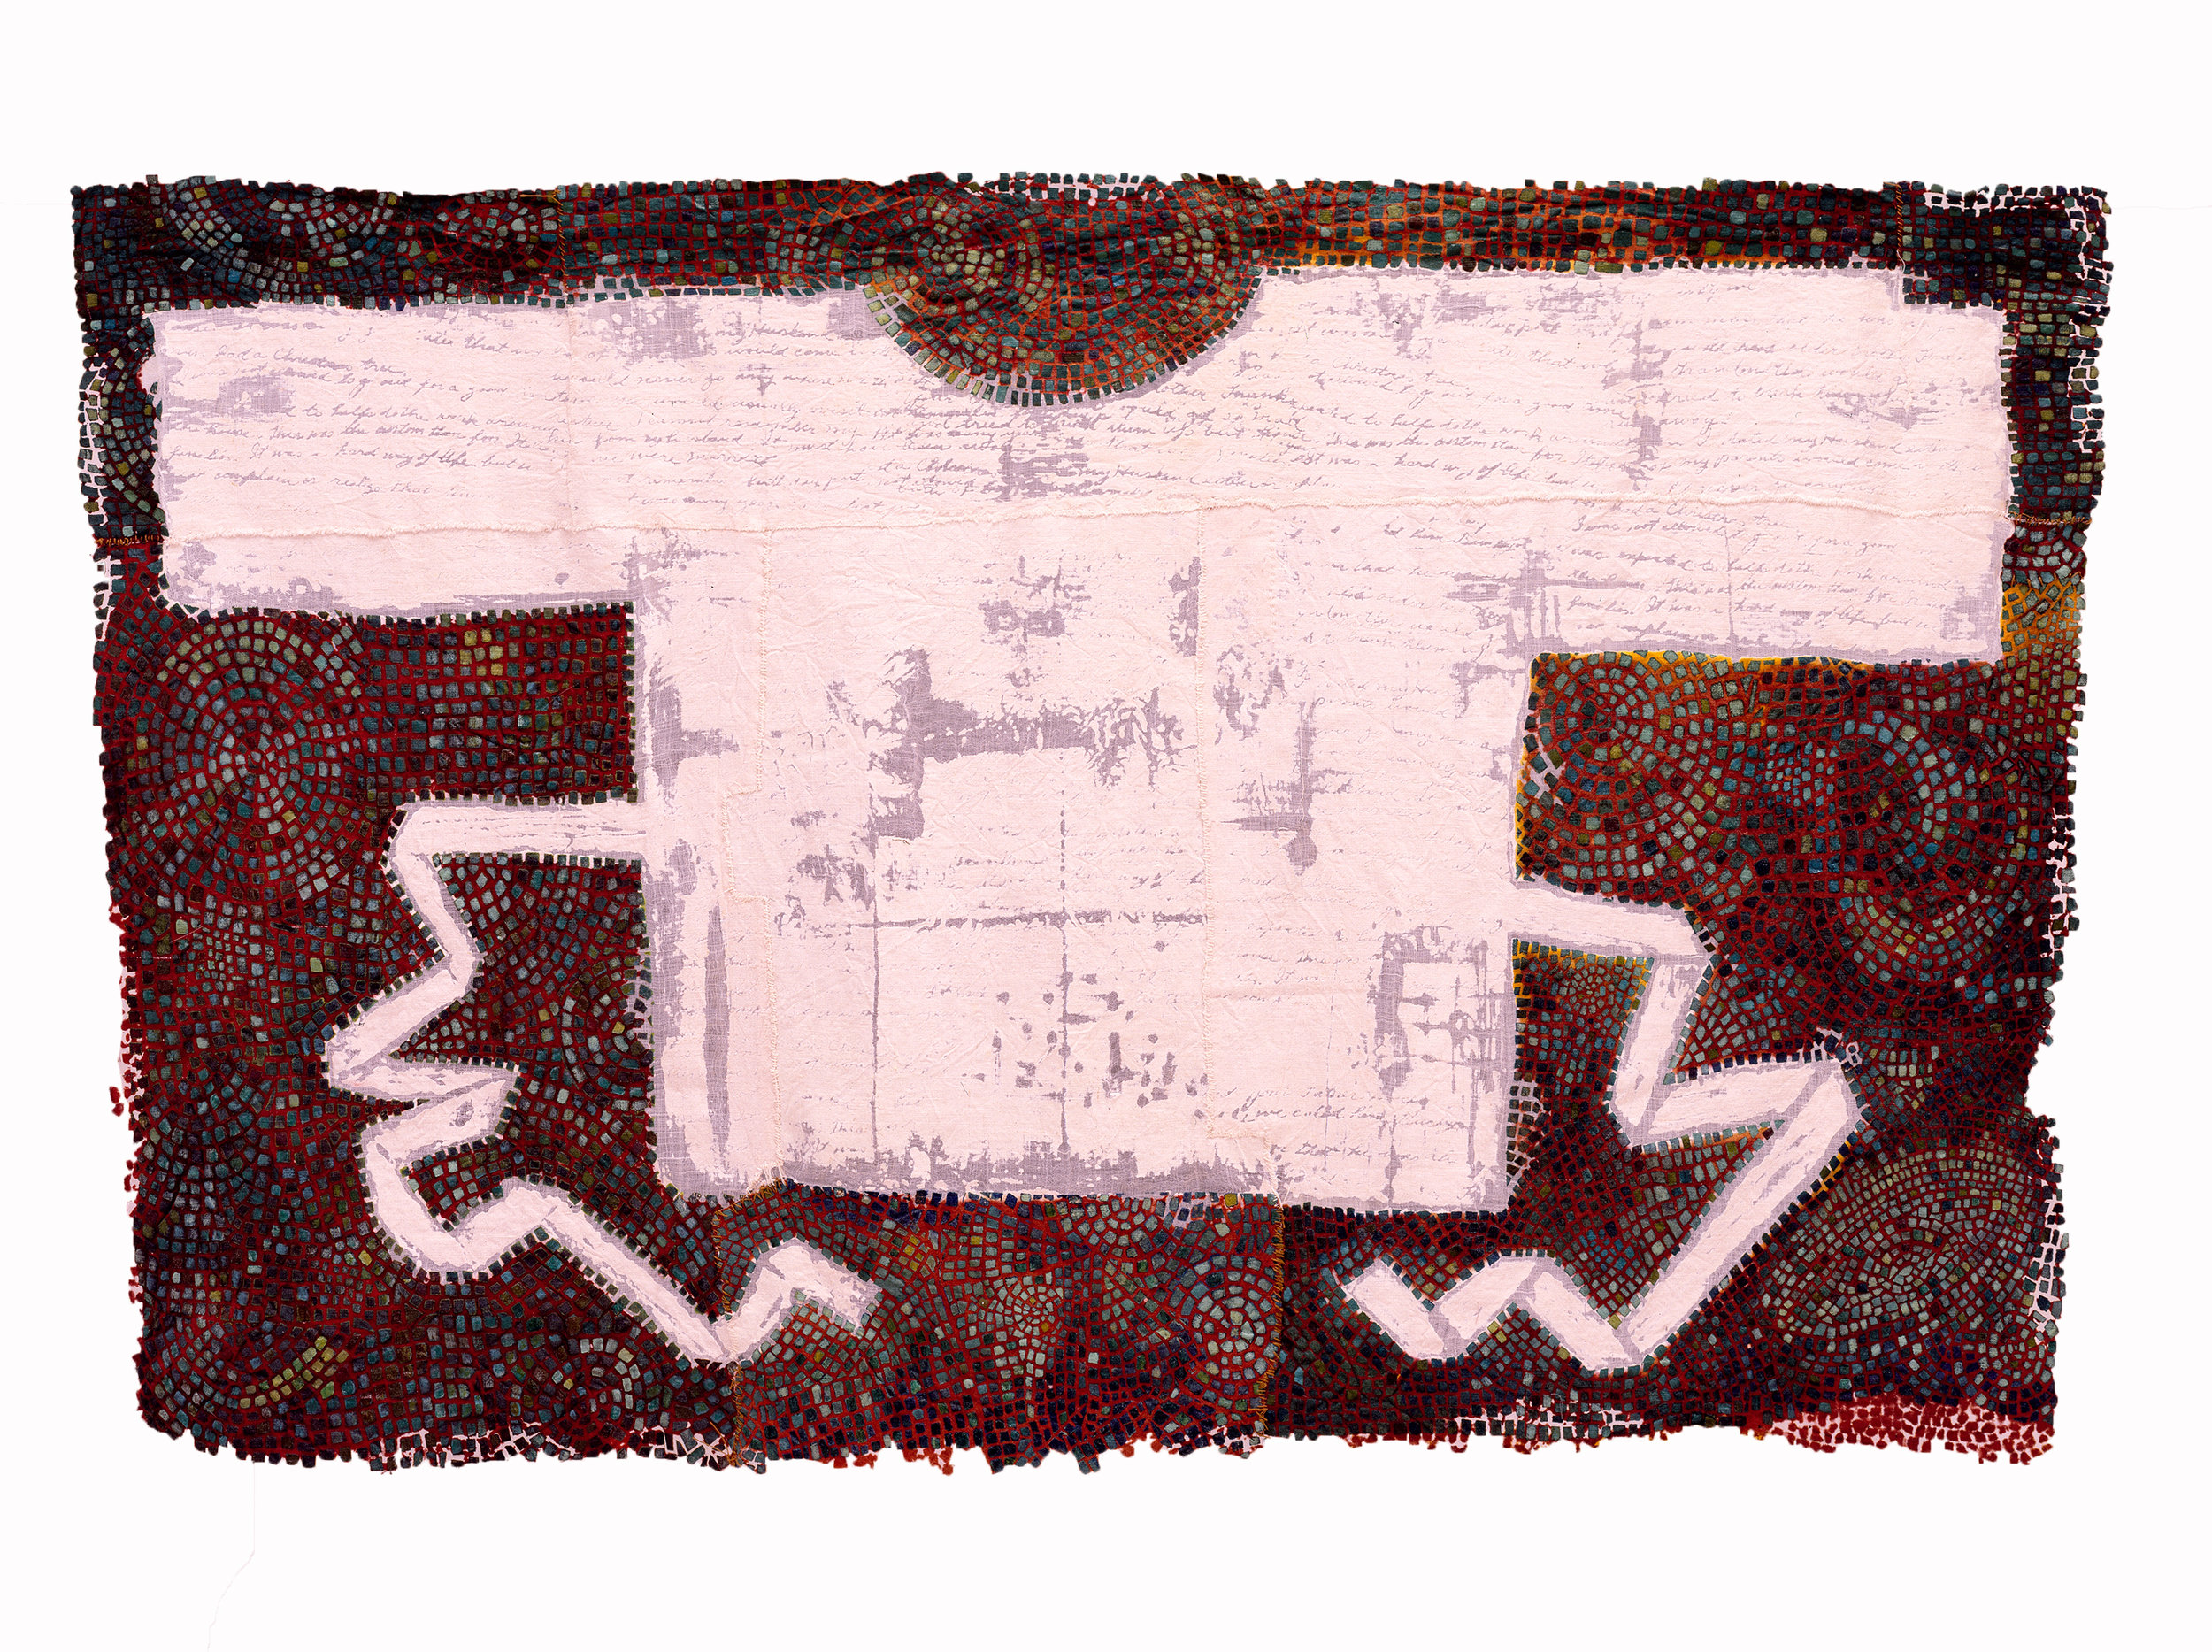 """Excavation: Soulskin #10   linen blend, thread, dye, pigment / devoré 30"""" x 47"""" x 13"""" 1997  """"I embrace the idea of """"old but kept"""" cloth as a metaphorical expression of people's lives. Clearly cloth can be physical evidence of past experiences, traditions and rituals. The text which is burnt through the surface alludes to a personal account, traditions of storytelling, or proverbs passed down through generations, These are all intangibles which can slip through one's fingers if they are not somehow preserved, Both skin and cloth are fragile and vulnerable to the elements, and I question what really lasts, or endures through time.""""–Susan Lordi Marker"""